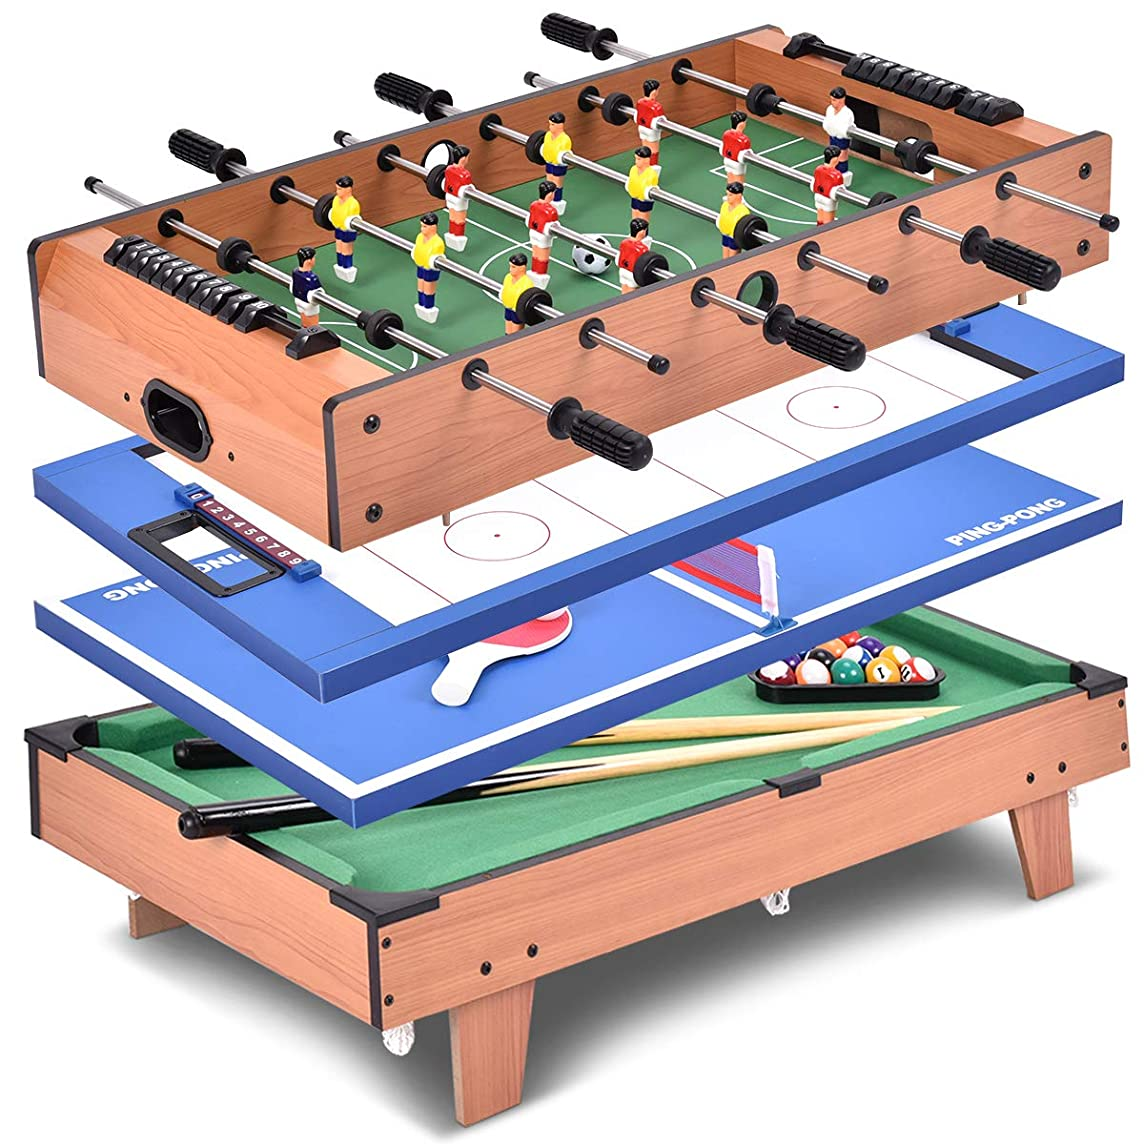 Giantex Multi Game Table Pool Hockey Foosball Table Tennis Billiard Combination Game Table (4 in 1)